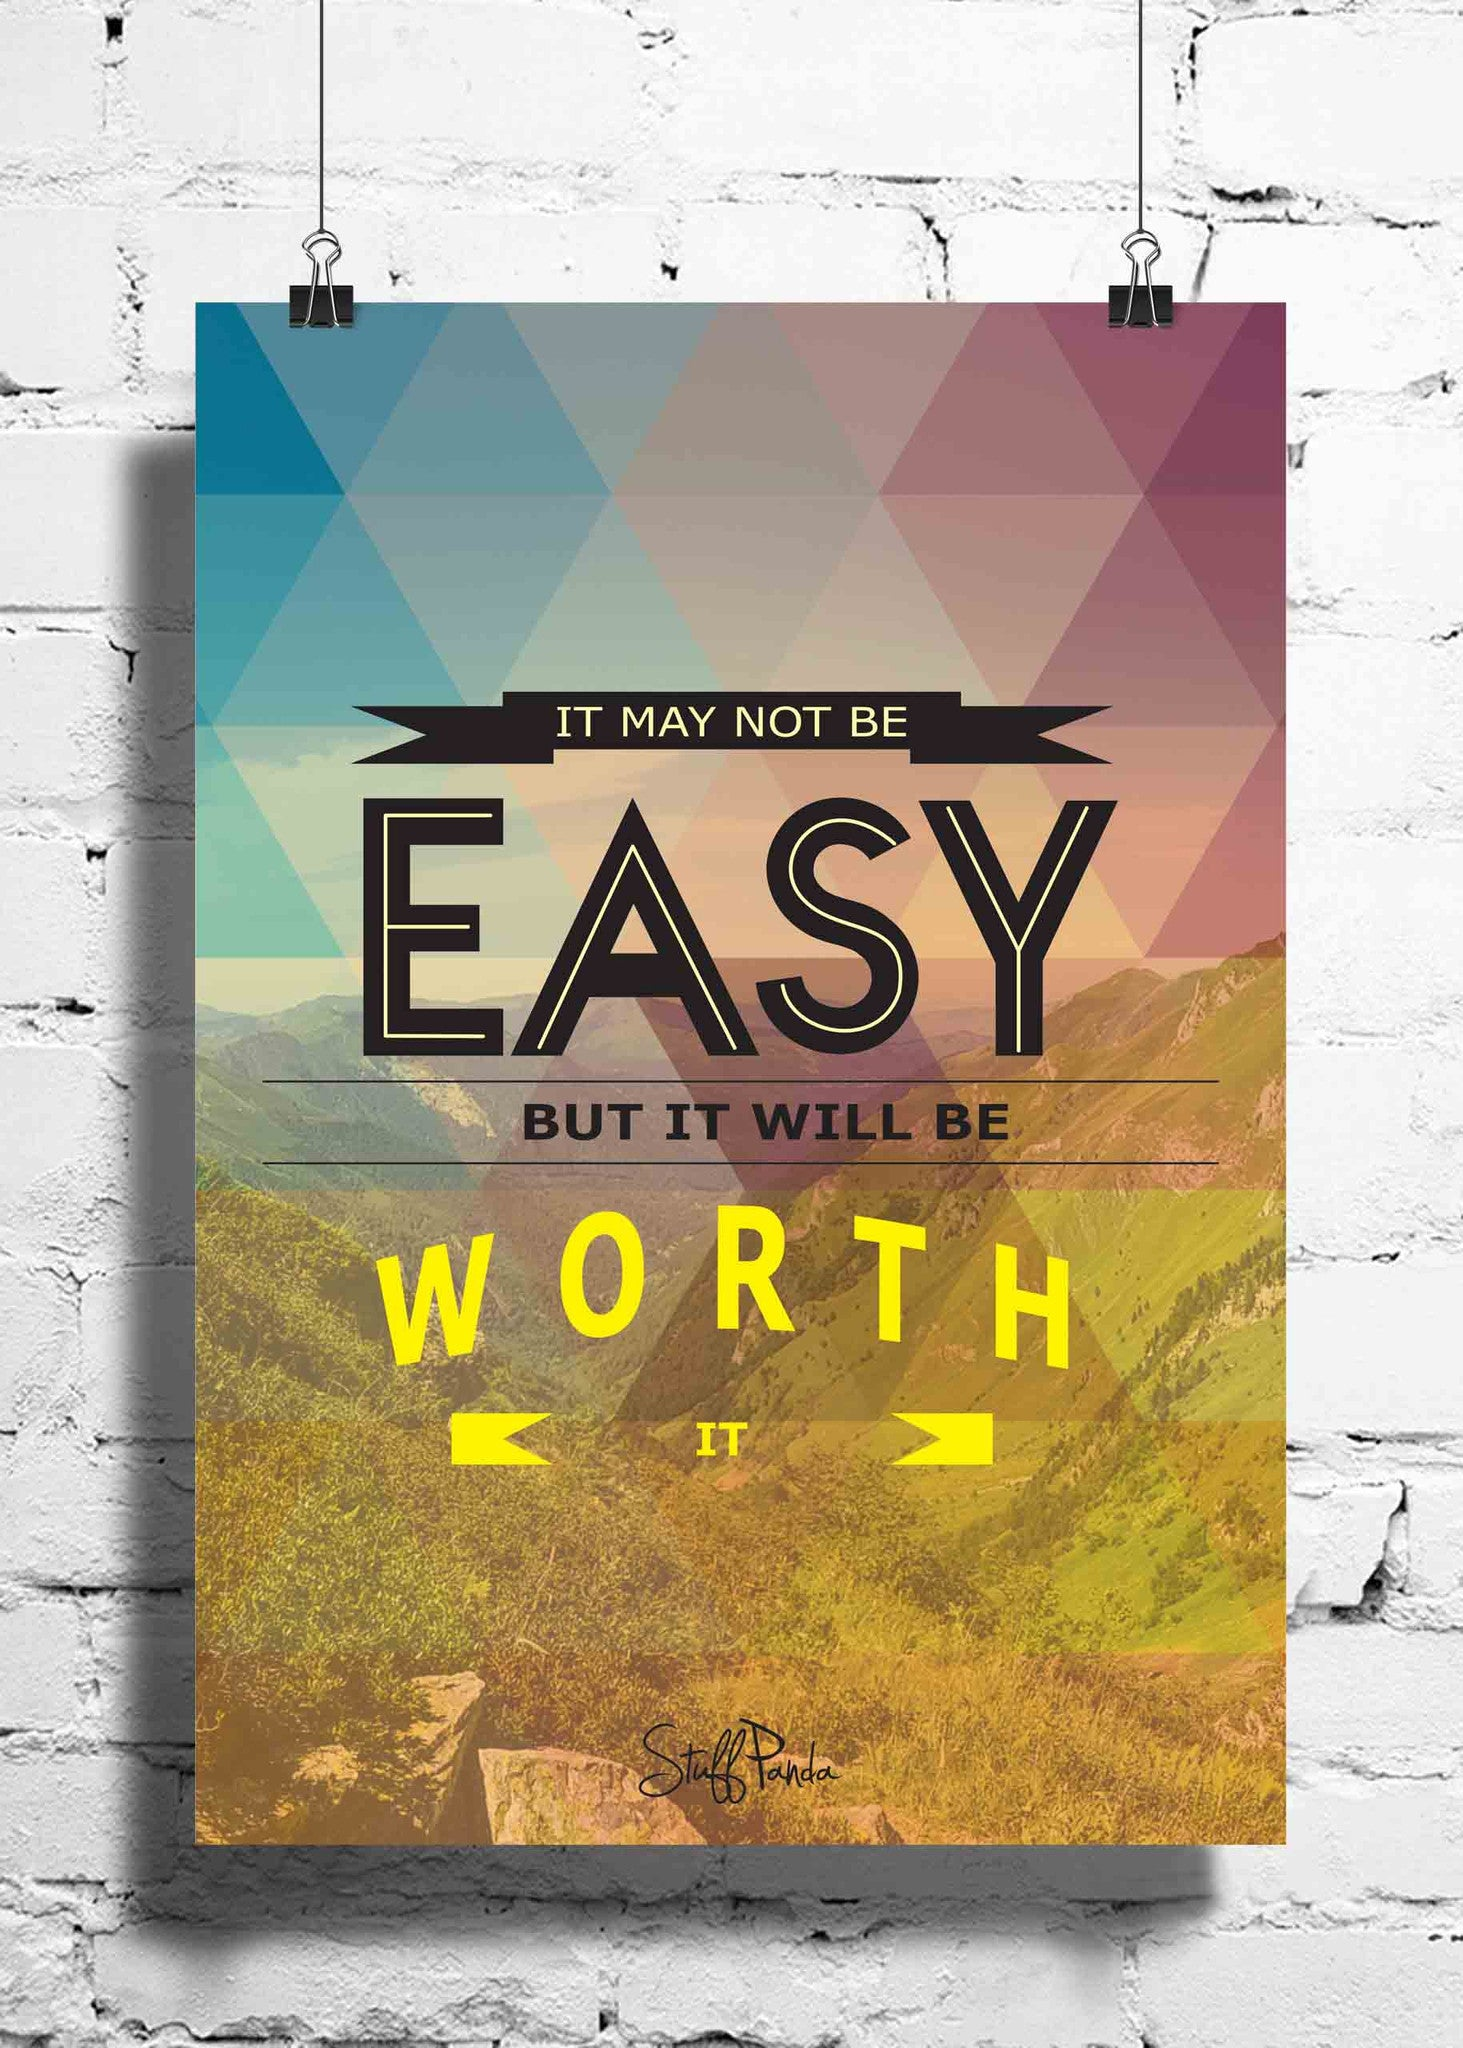 Cool Abstract Motivation It may not be easy wall posters, art prints, stickers decals - stuffpanda - 1